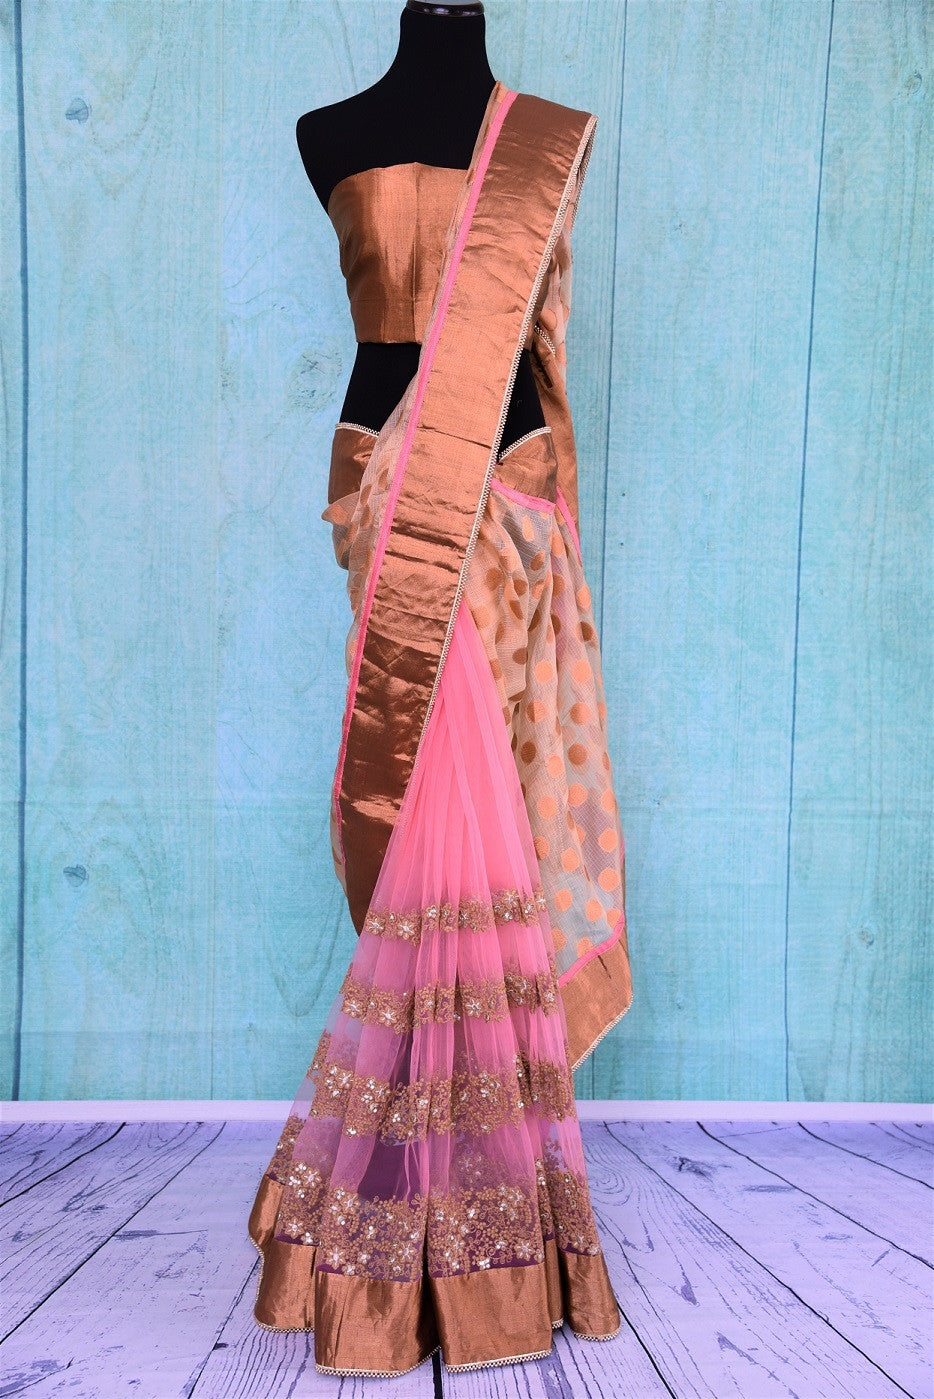 90B427 Half net, half zari kota saree with embroidery and bronze gold border. The pink party wear saree can be bought online at our Indian ethnic store Pure Elegance. This dreamy saree will be a wonderful addition your ethnic closet.